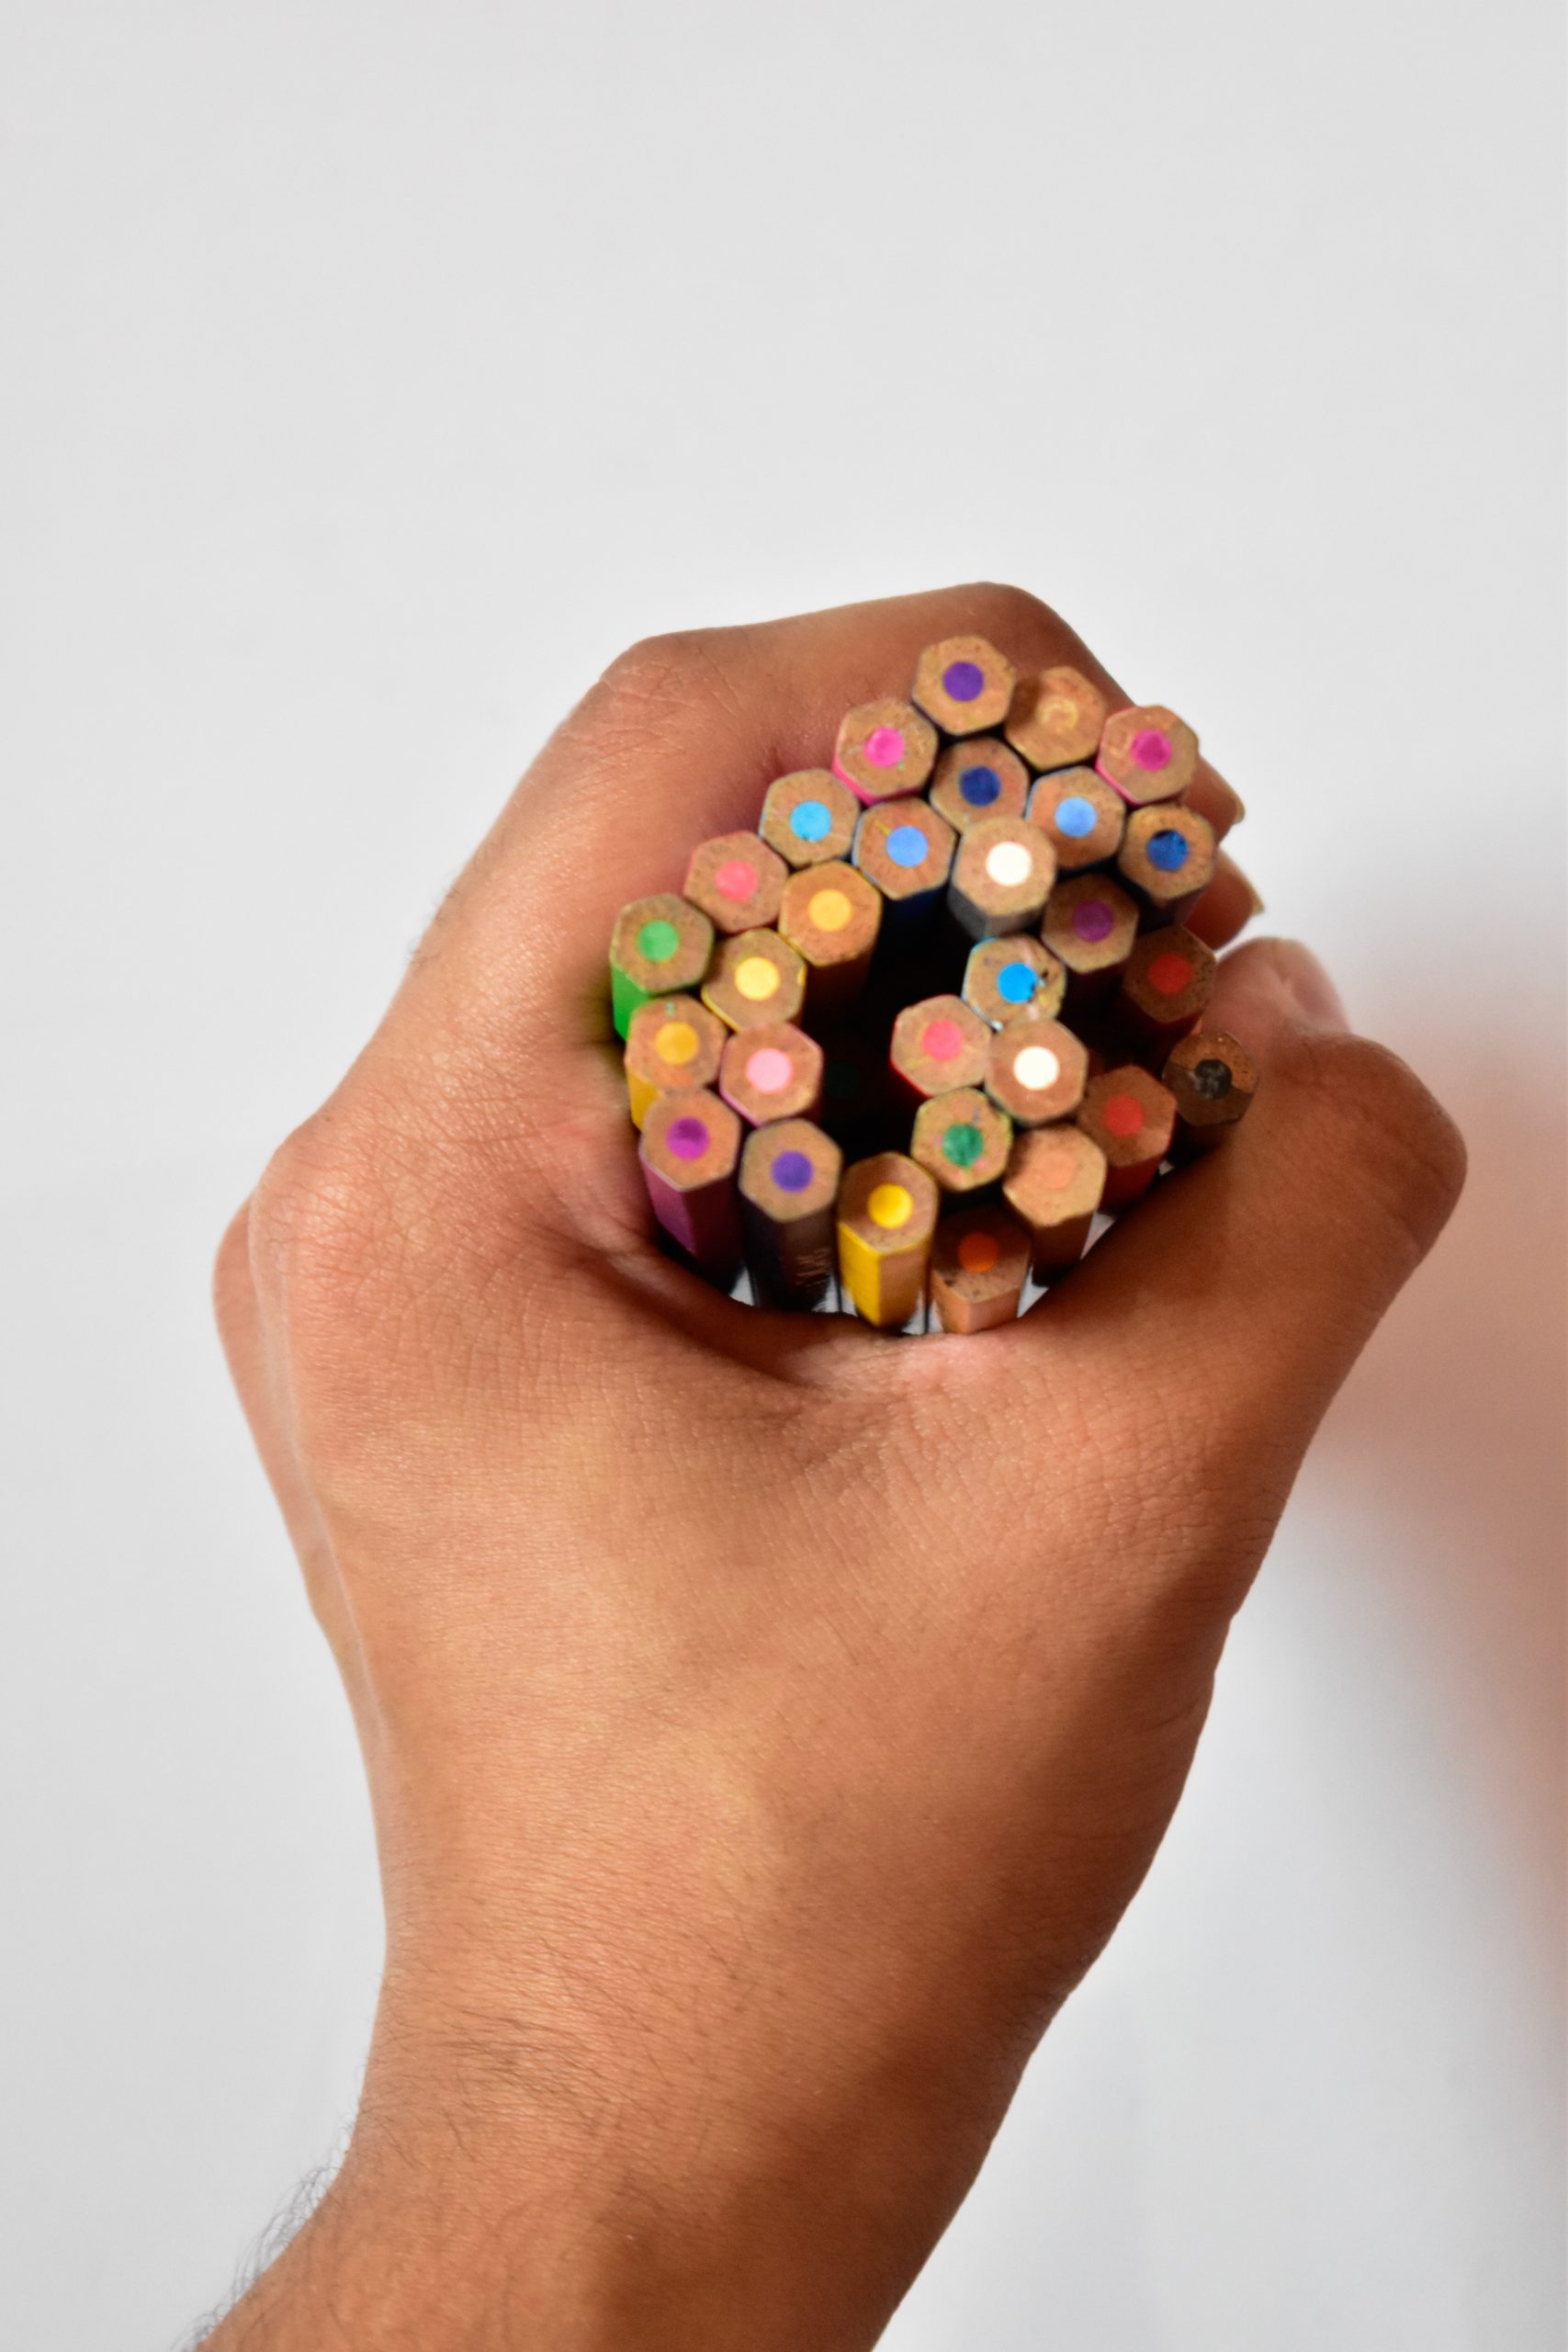 pencil colors in a hand